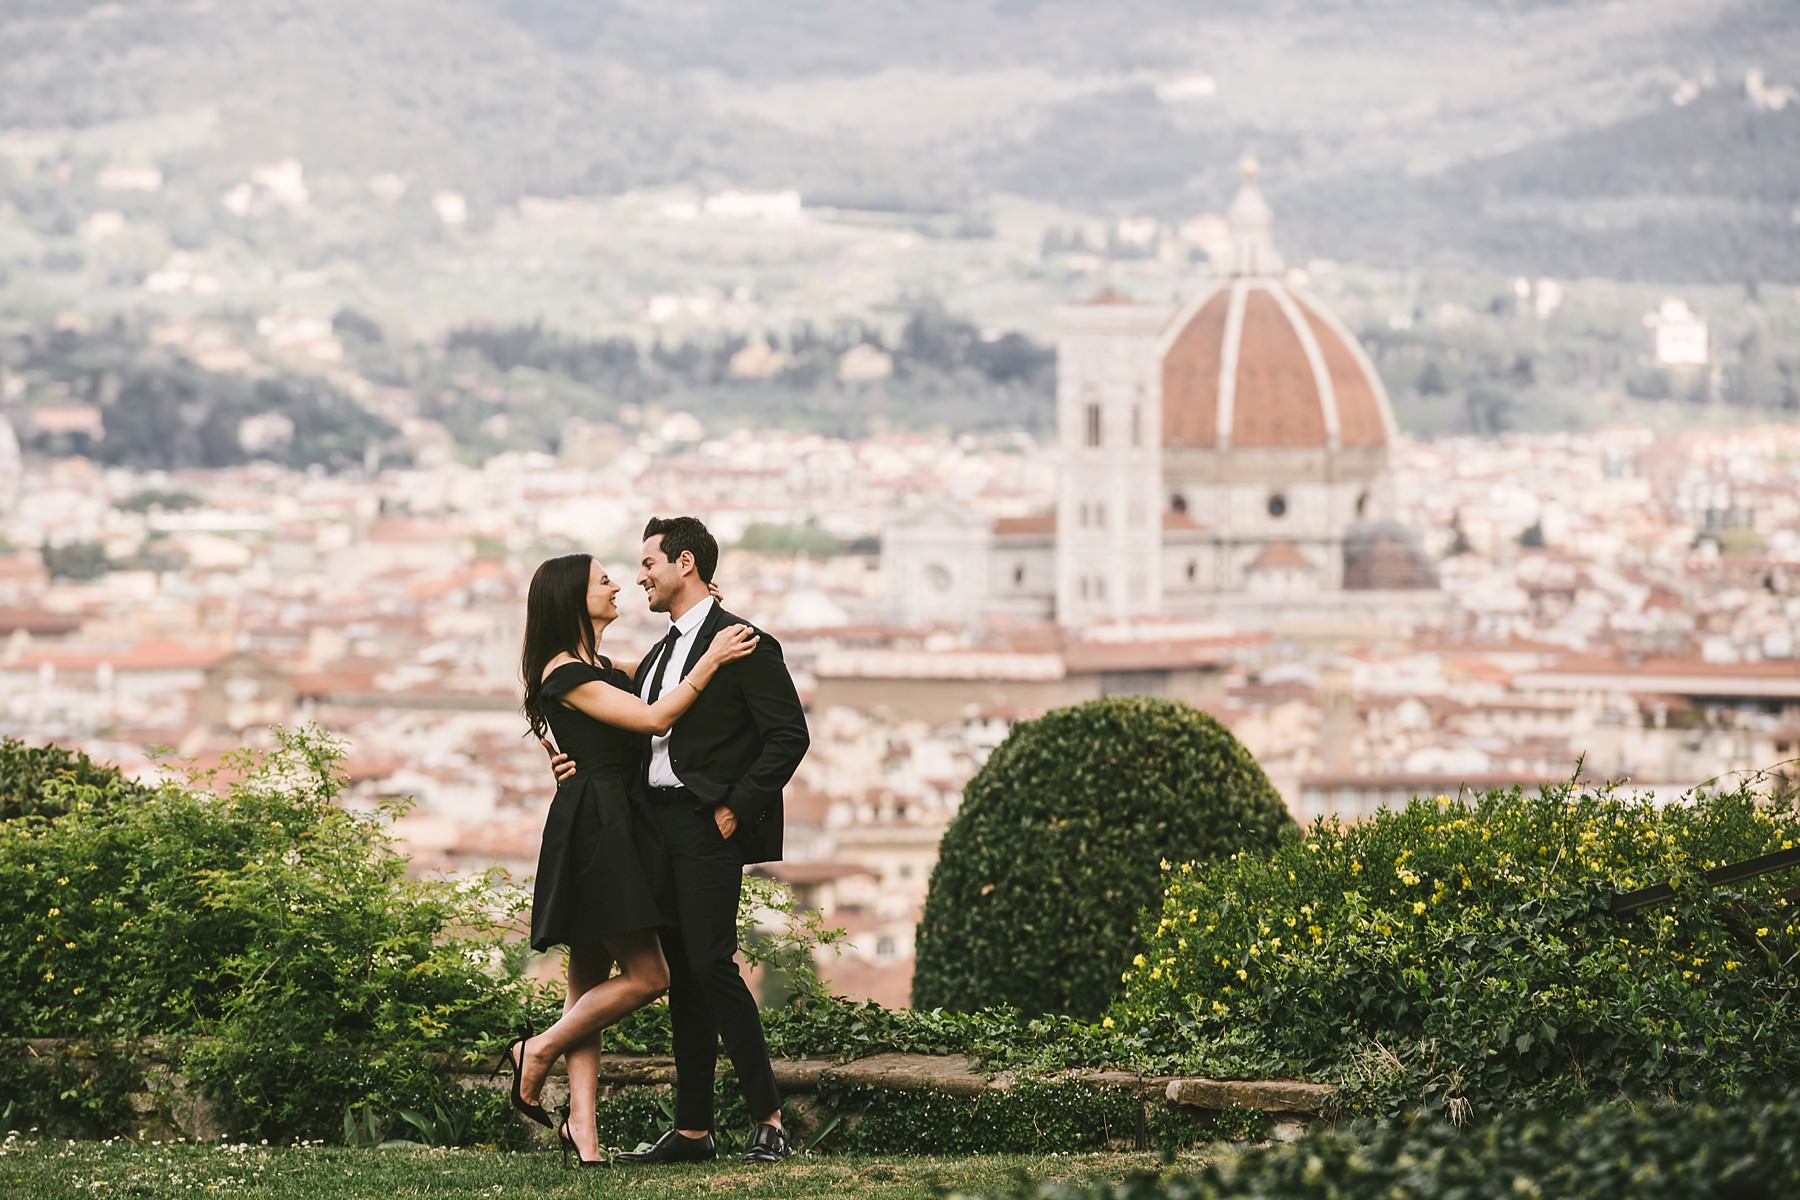 Couple portrait engagement pre-wedding photo session at Torre Bellosguardo with the Florentine Dome in the background